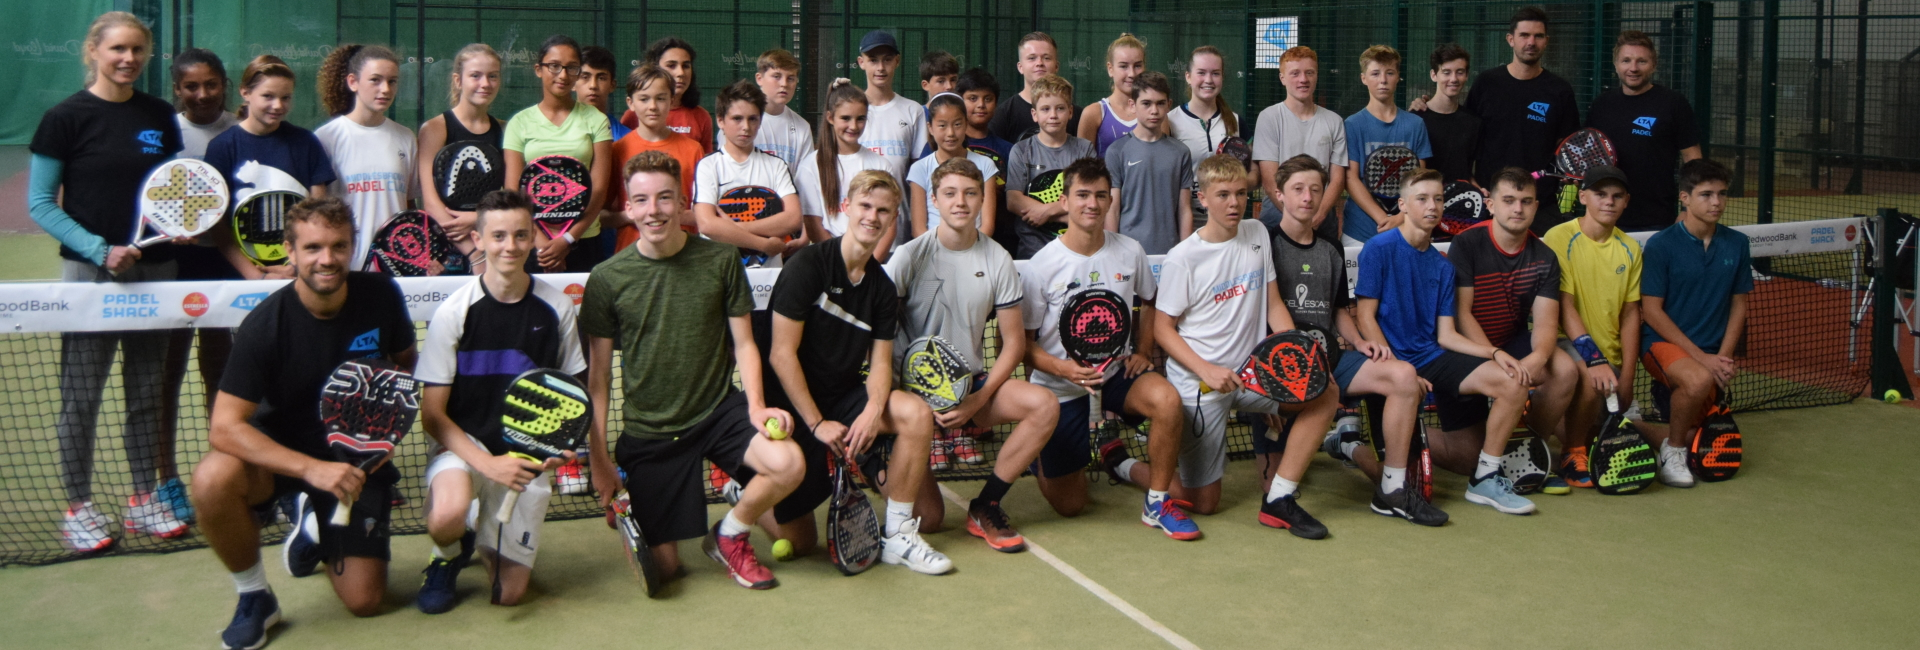 About Us - The Padel School